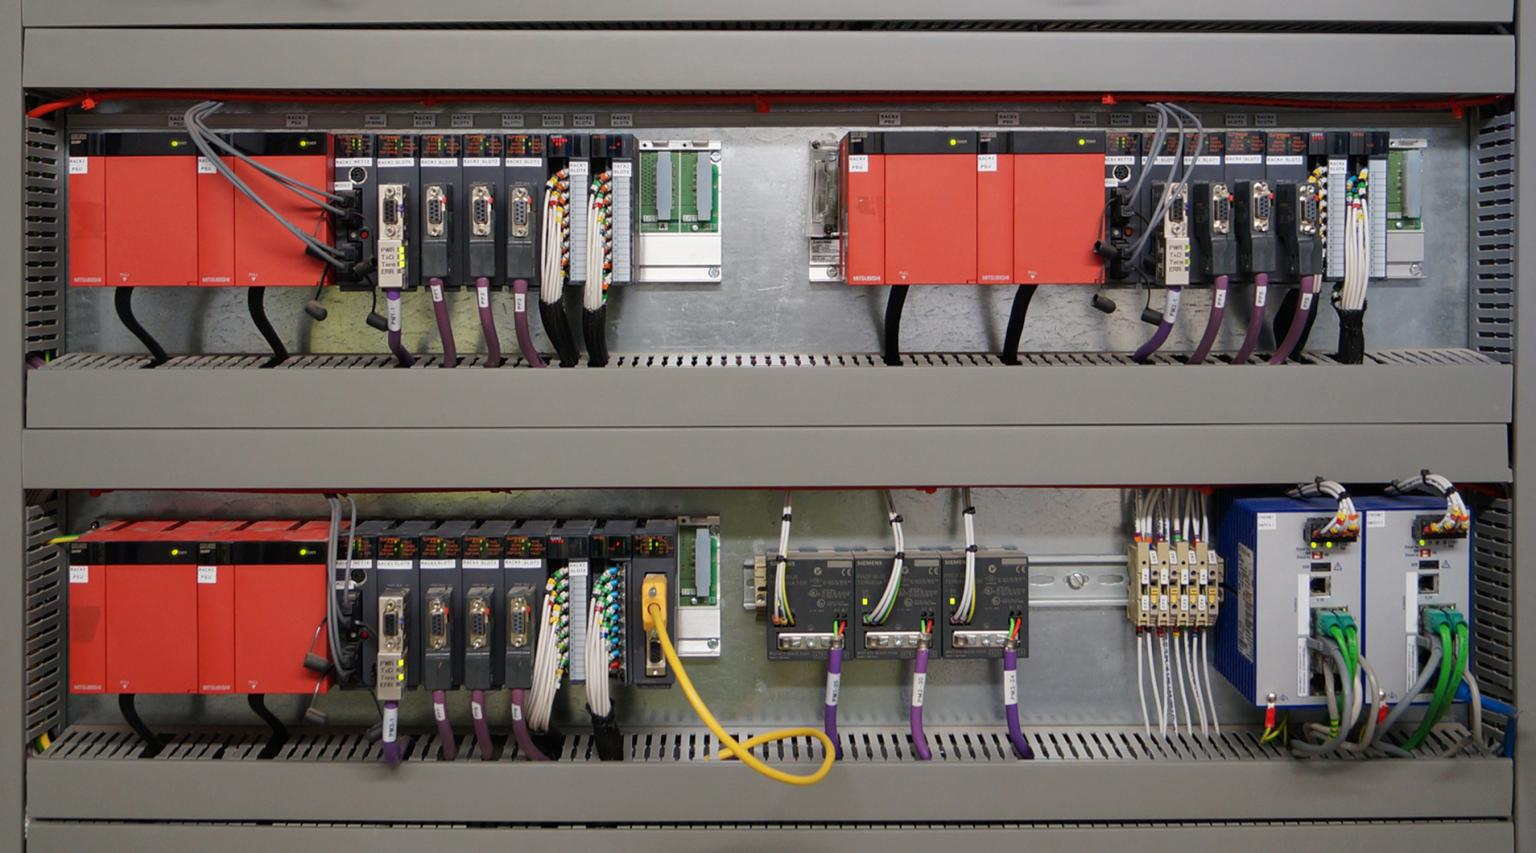 The Mitsubishi QnPRH PLCs are designed to work in a redundant set-up. The system was designed with two processor racks and three I/O racks in the main MCC, with 1/3 of the plant on each I/O rack